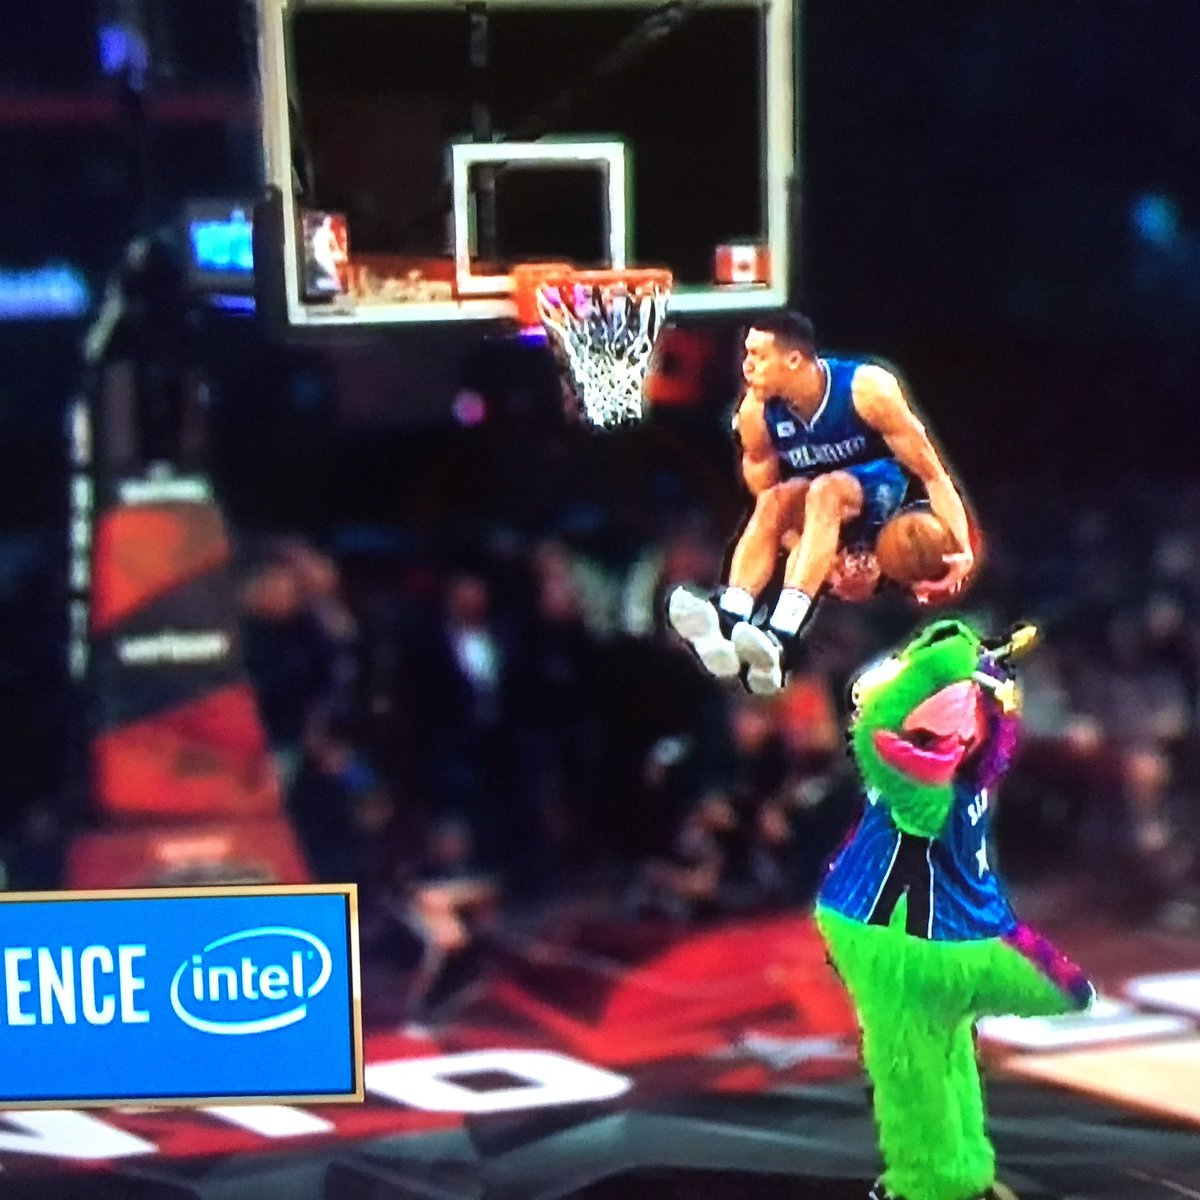 How you gonna sit down in the middle of a dunk? https://t.co/8taPMx0RSt